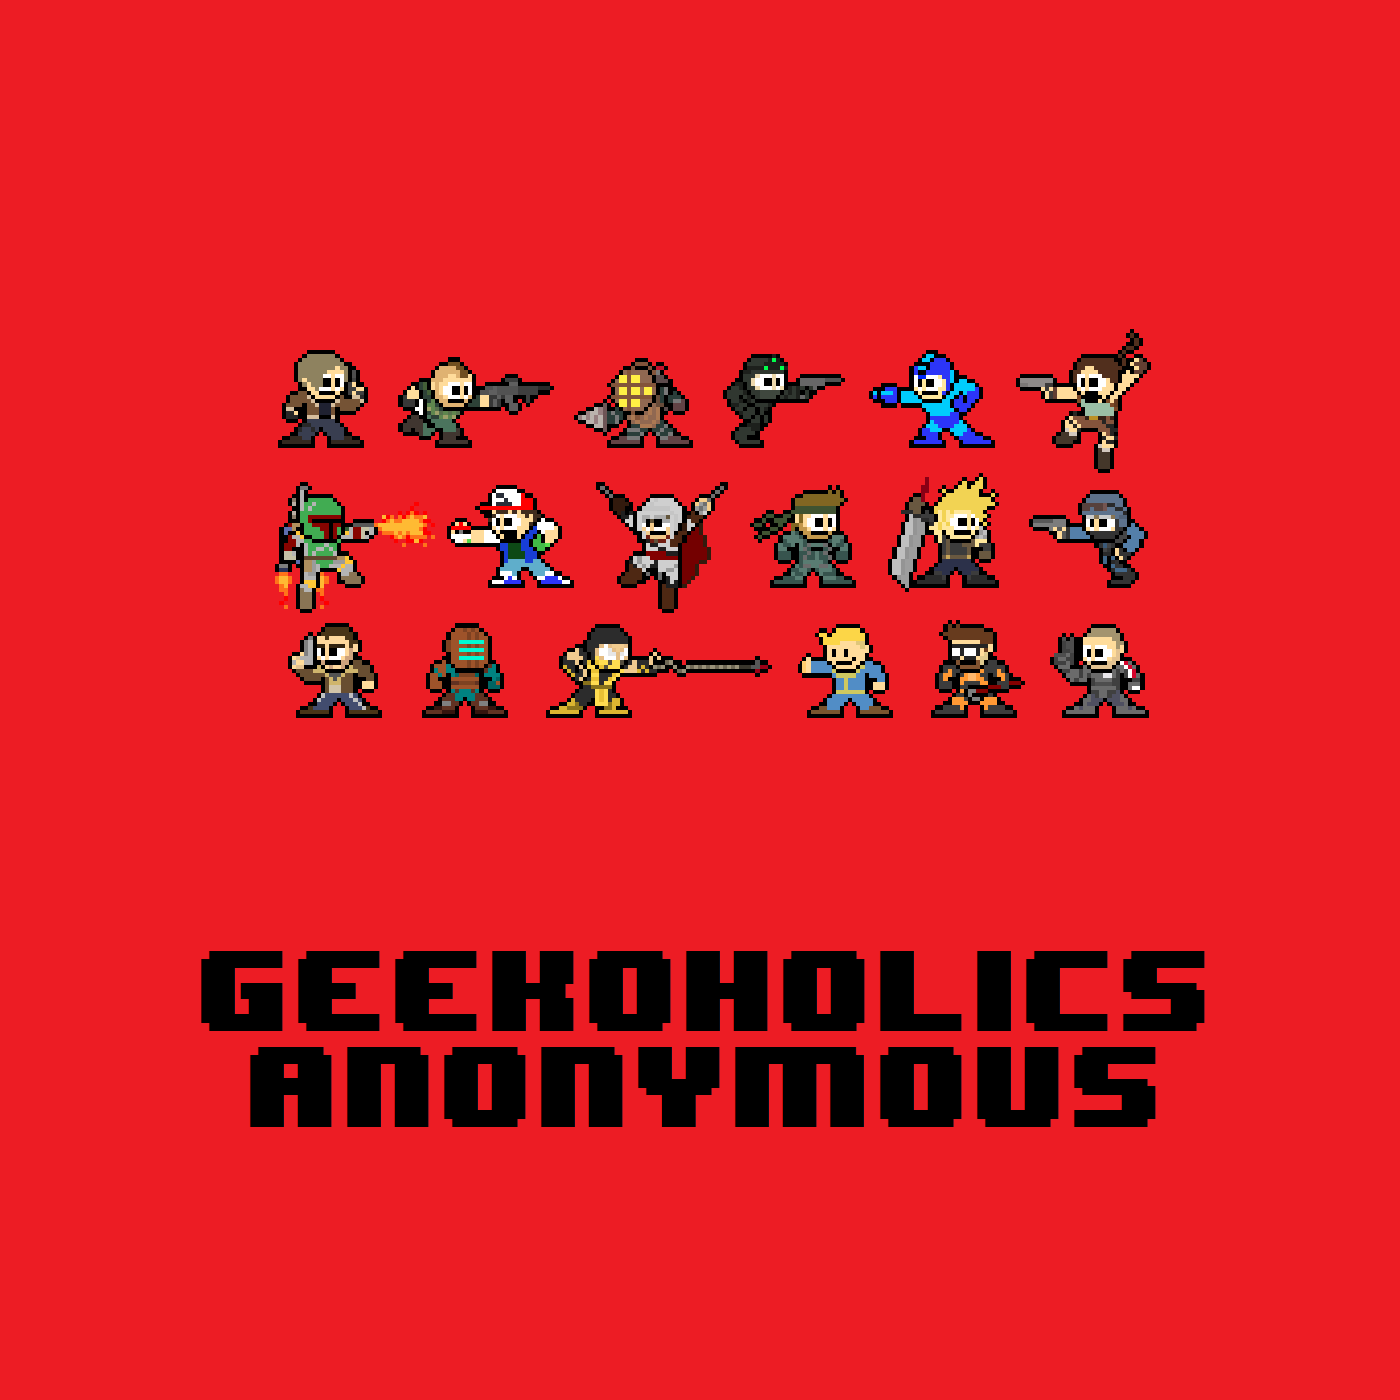 Half-Life Alyx, Final Fantasy XIV, PlayStation 5 breaking records and more - Geekoholics Anonymous Podcast 303 show art